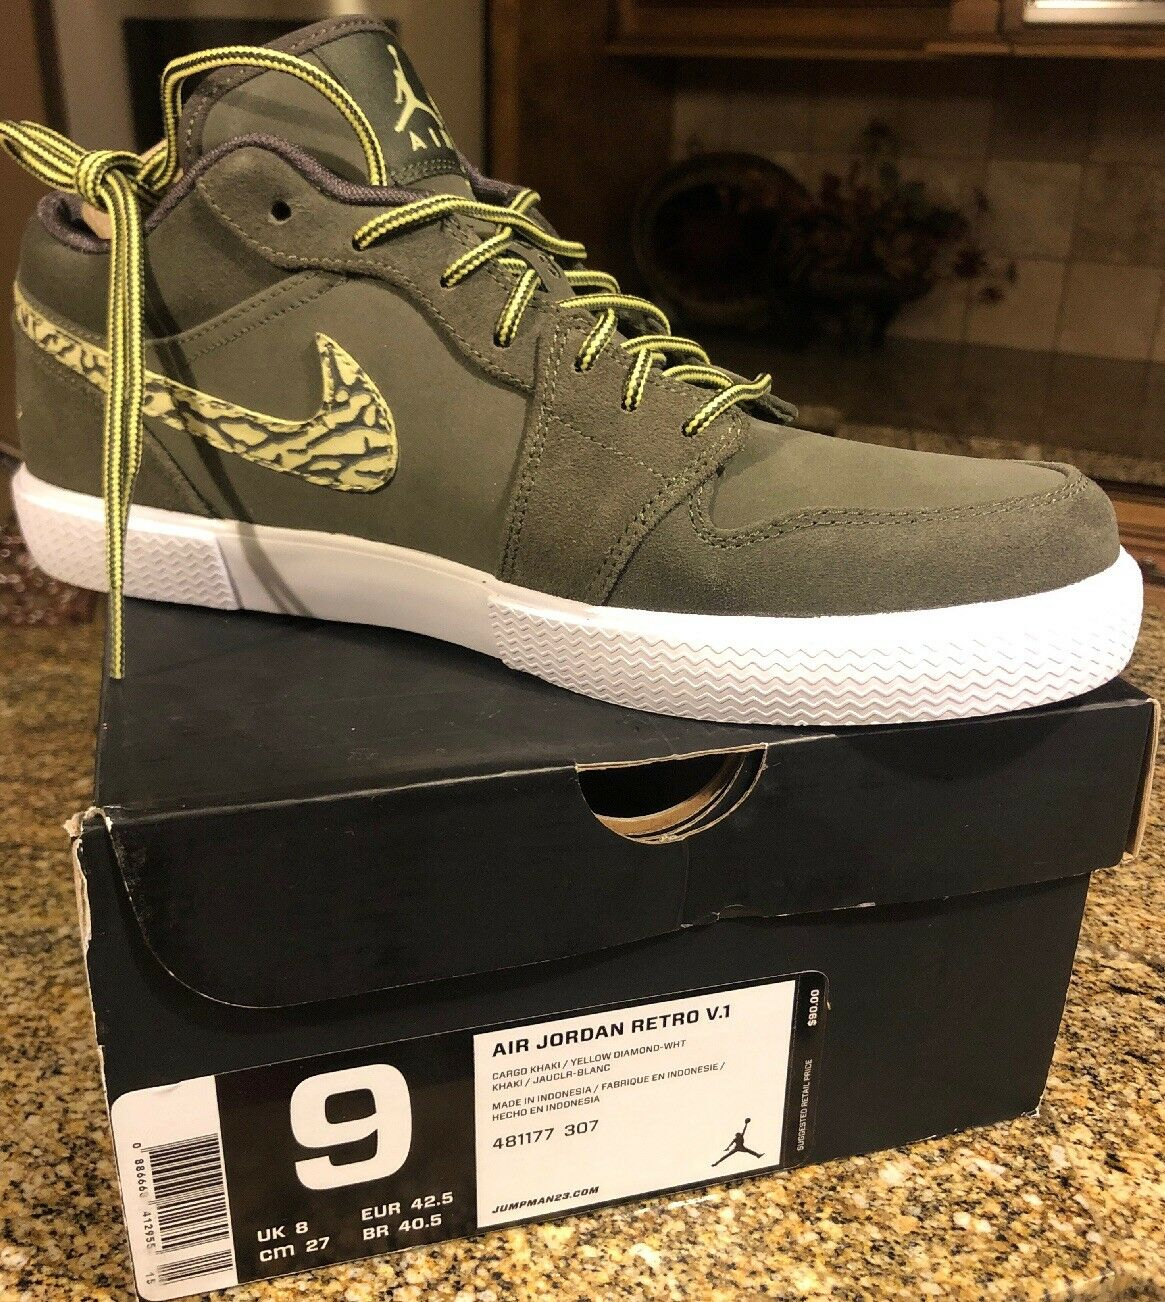 New Men's 9 Nike Air Jordan Retro V.1 Cargo Khaki Yellow Diamond Wht 481177 307